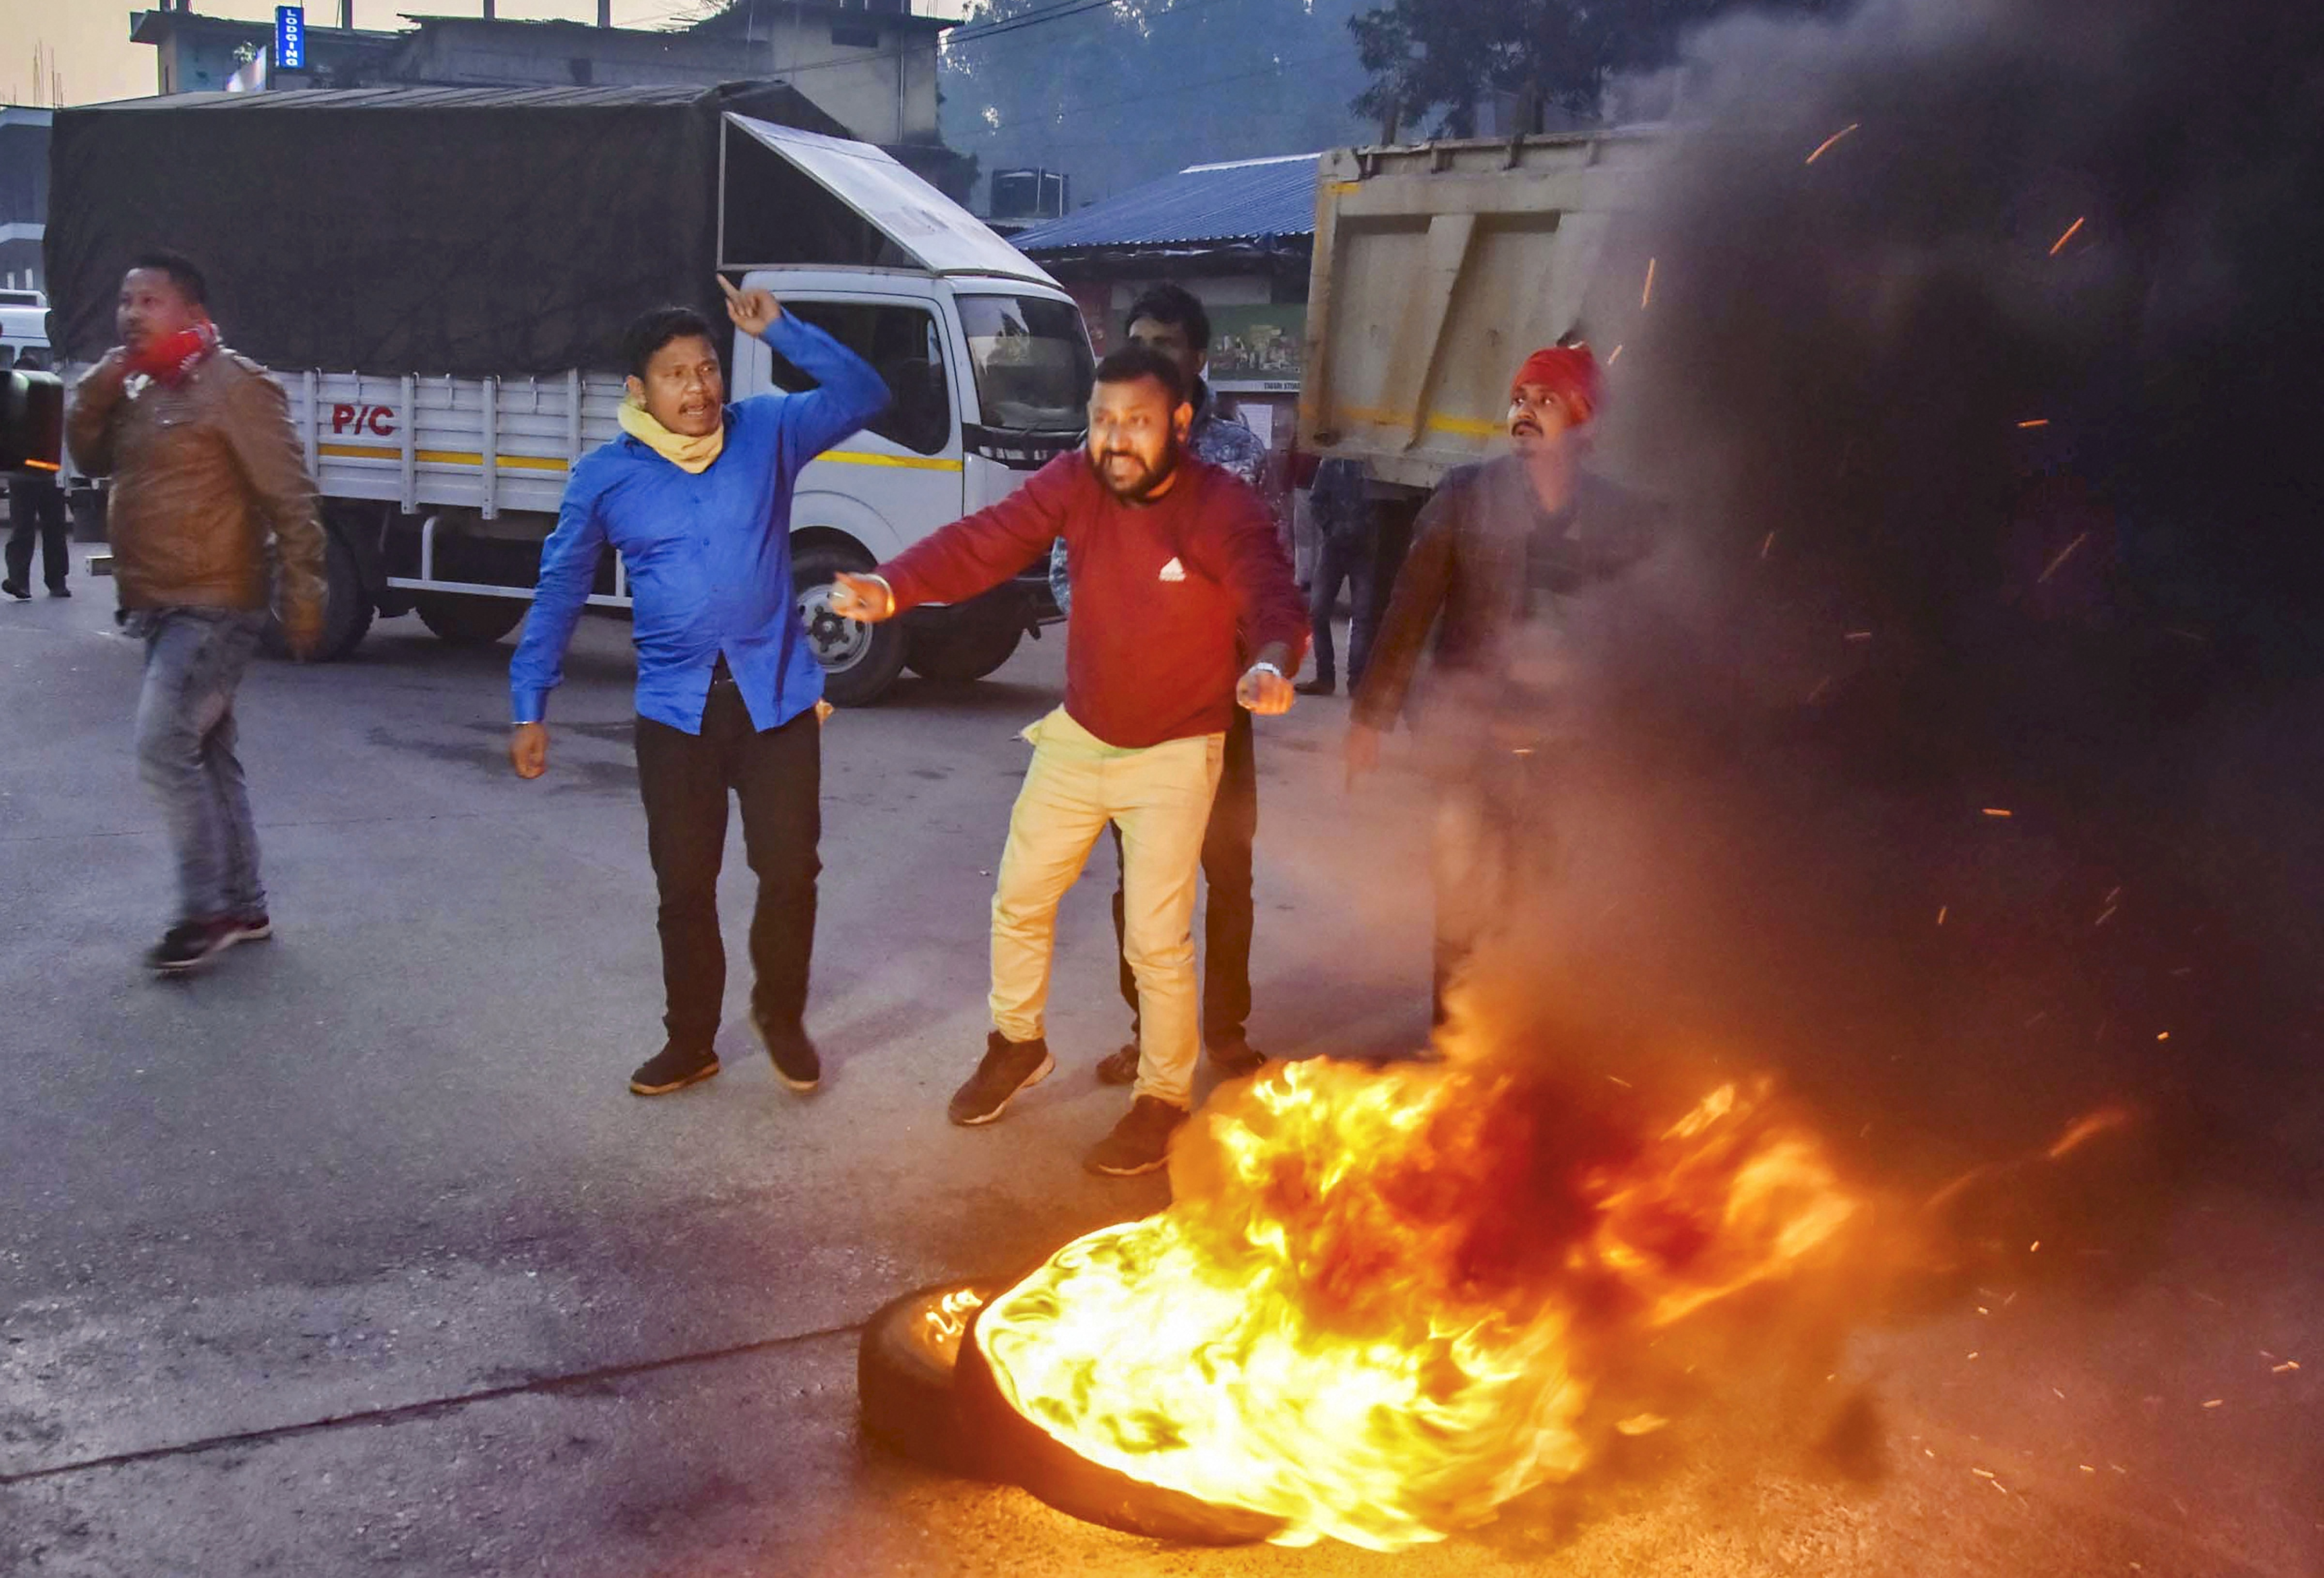 Protesters burn tires at a strike during Assam Bandh called by All Assam Chutia Students Union and All Moran Students Union against the Citizenship (Amendment) Bill, in Guwahati, Monday, December 9, 2019.